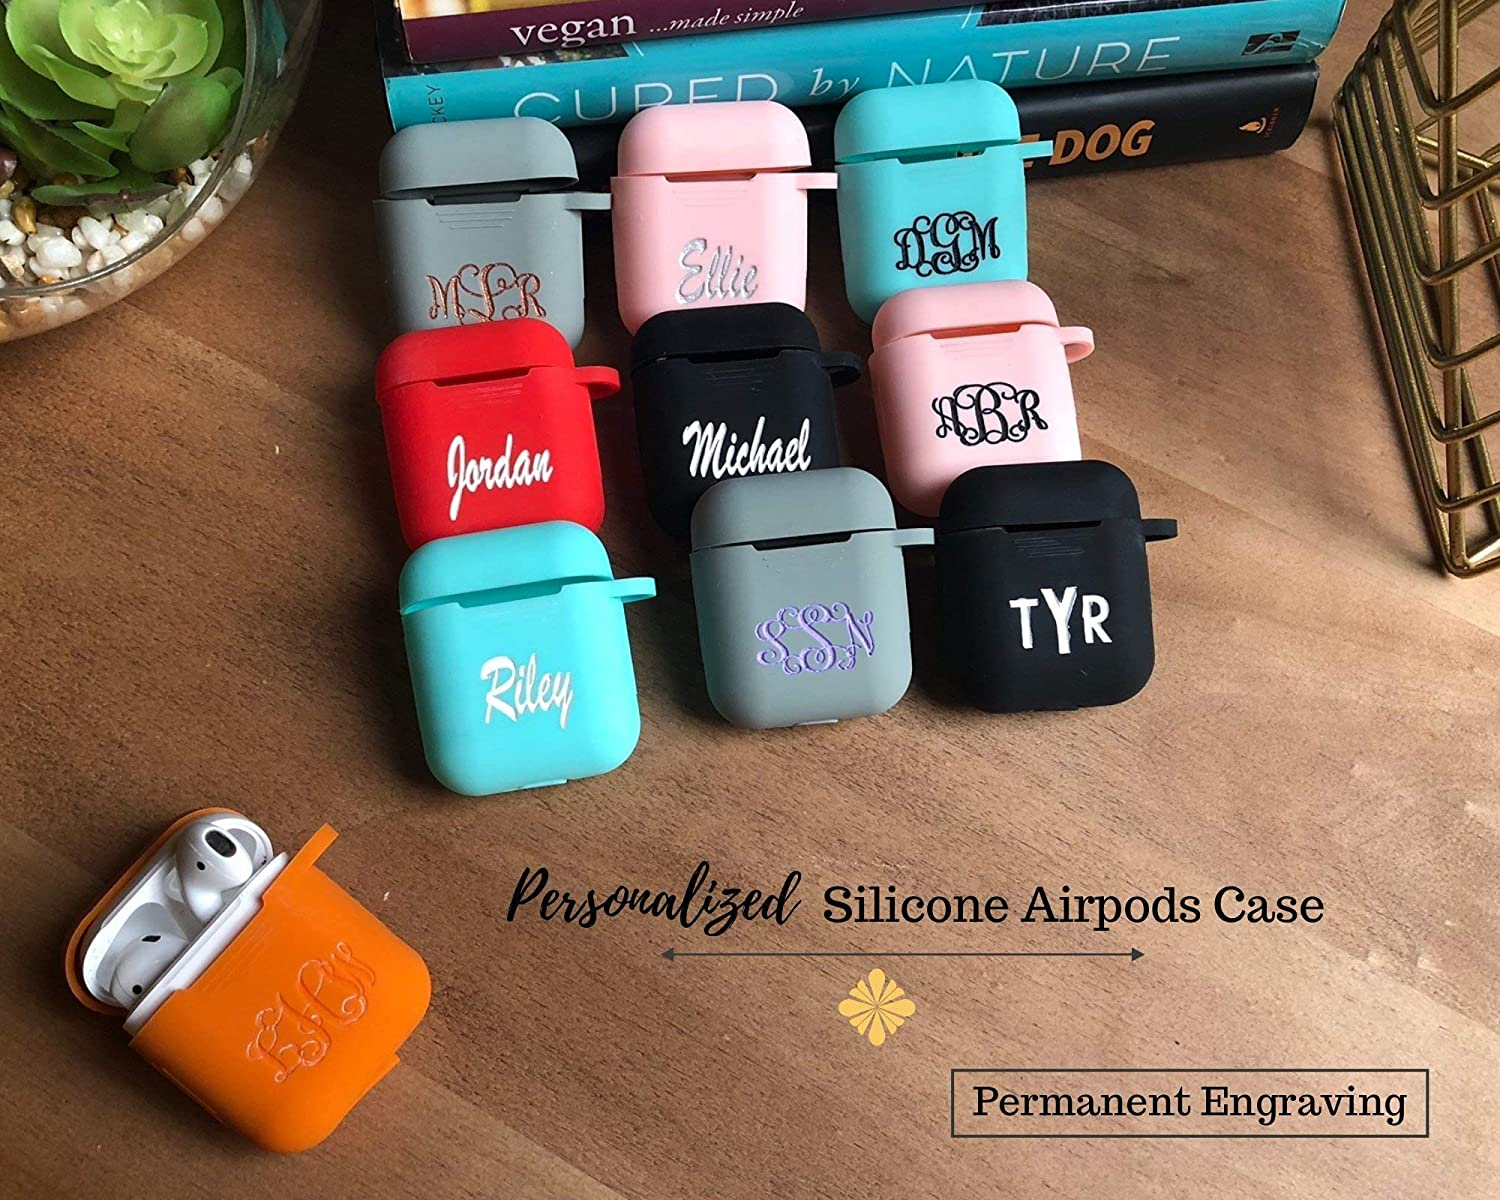 Personalized Airpods Case Custom Airpods Case Personalized Gift Personalized Earbuds Cover Monogram Gift Silicone Airpods Case Silicone Earbuds